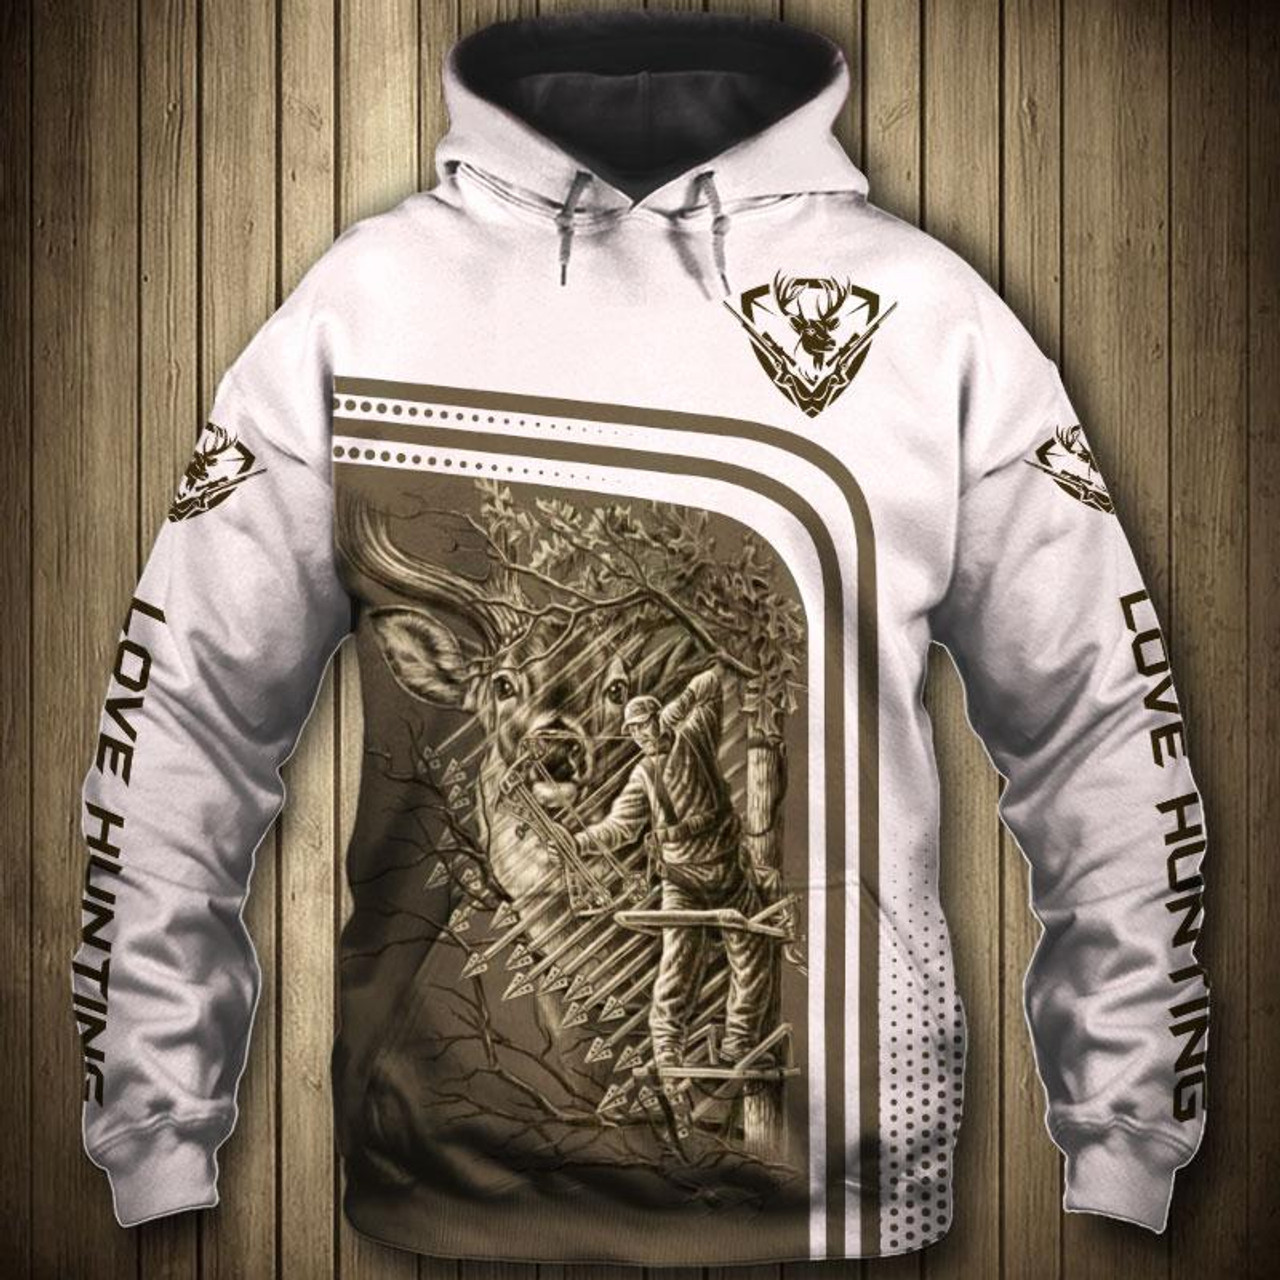 8c4eca1e **(OFFICIAL-ARCHERY-BUCK-HUNTING-PULLOVER-HOODIES/3-D-CUSTOM-DETAILED- GRAPHIC-PRINTED/DOUBLE-SIDED-ALL-OVER-PRINTED-DESIGN/LOVE-HUNTING-DOWN-SLEEVES  ...